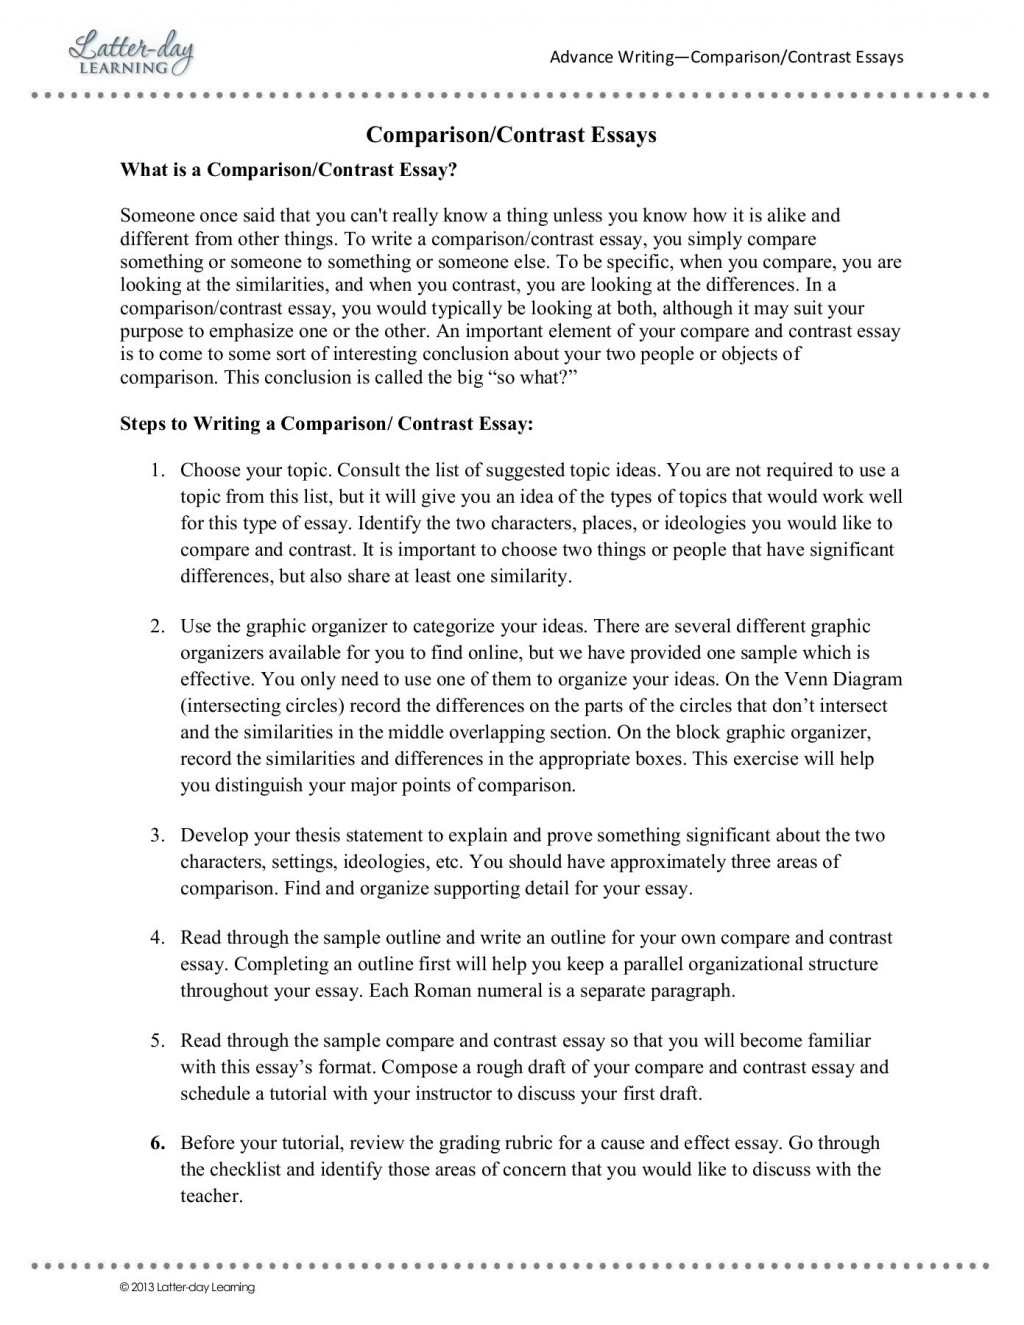 018 Essay Example Compare Contrast Best Essays Topics Technology Comparison Outline And Format Large